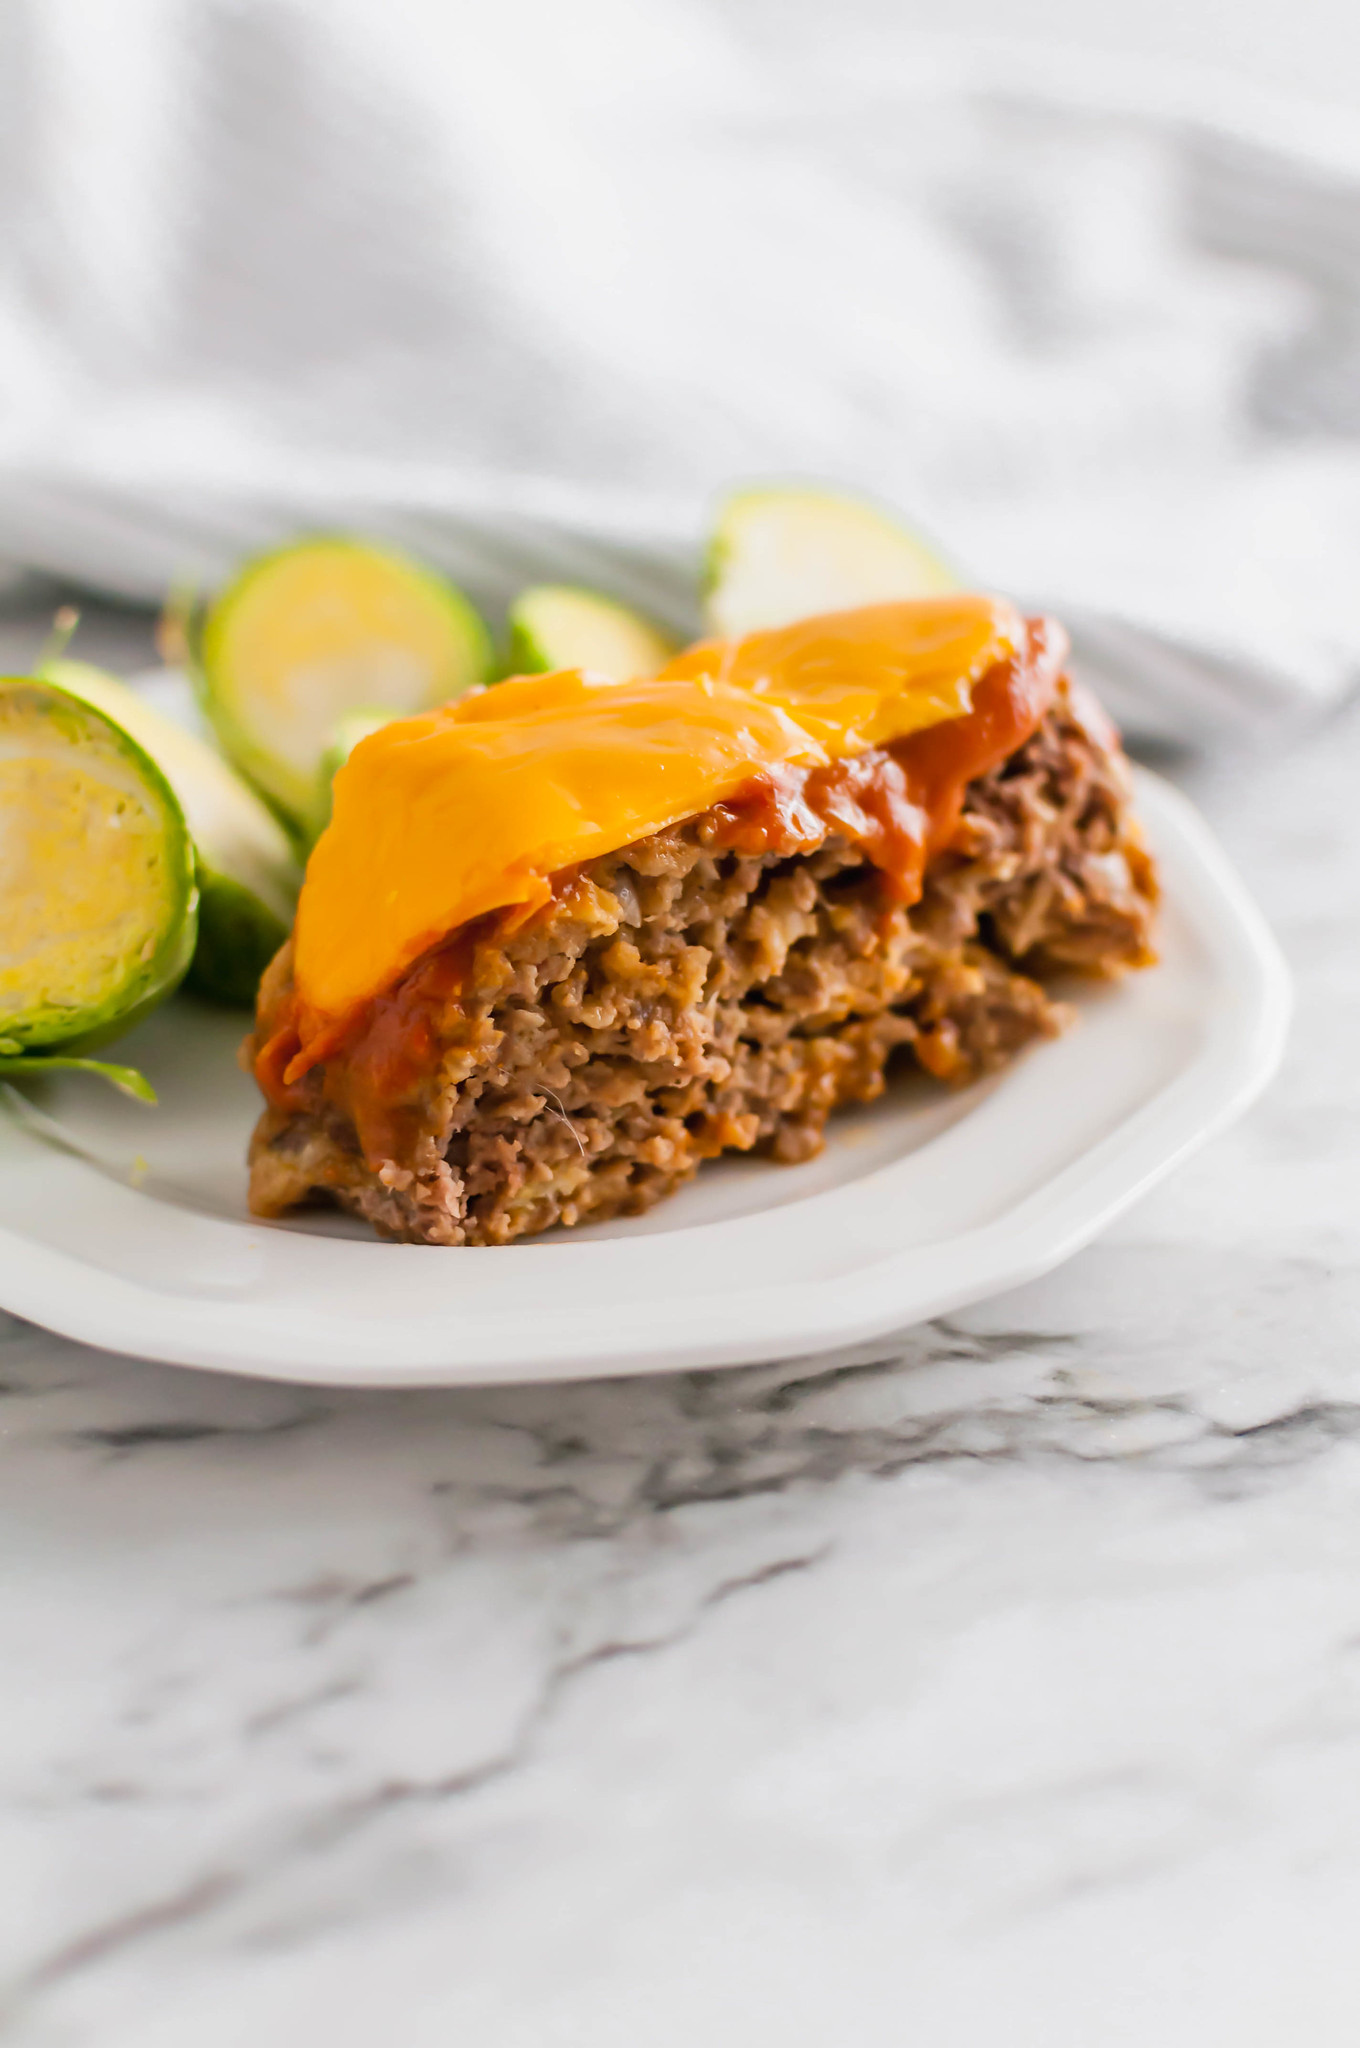 All the glorious flavors of a cheeseburger packed into an easy, weeknight friendly Cheeseburger Meatloaf. It's sure to become a family favorite.